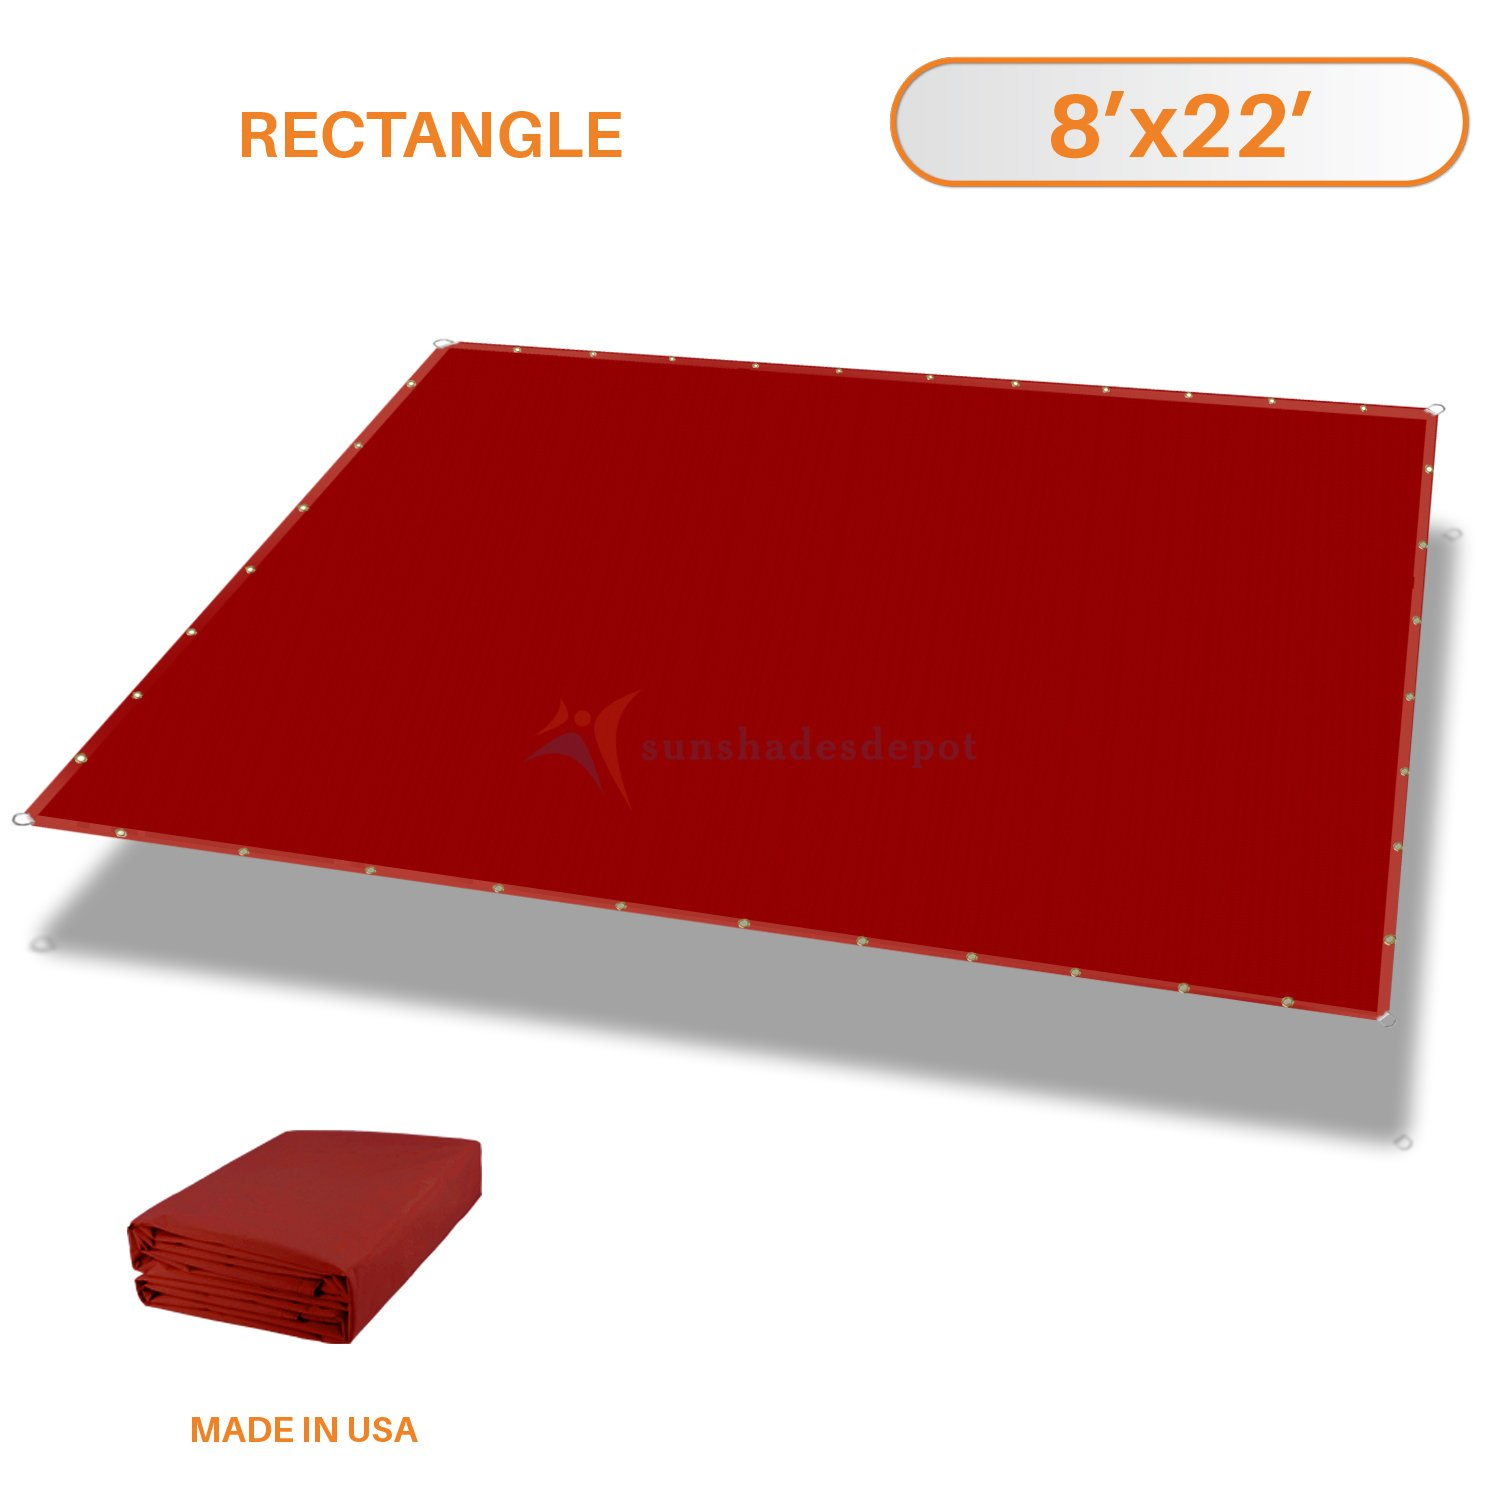 Sunshades Depot Tang 8'x22' Waterproof Rectangle Sun Shade Sail 220 GSM Red Straight Edge Canopy with Grommet UV Block Shade Fabric Pergola Cover Awning Customize Available